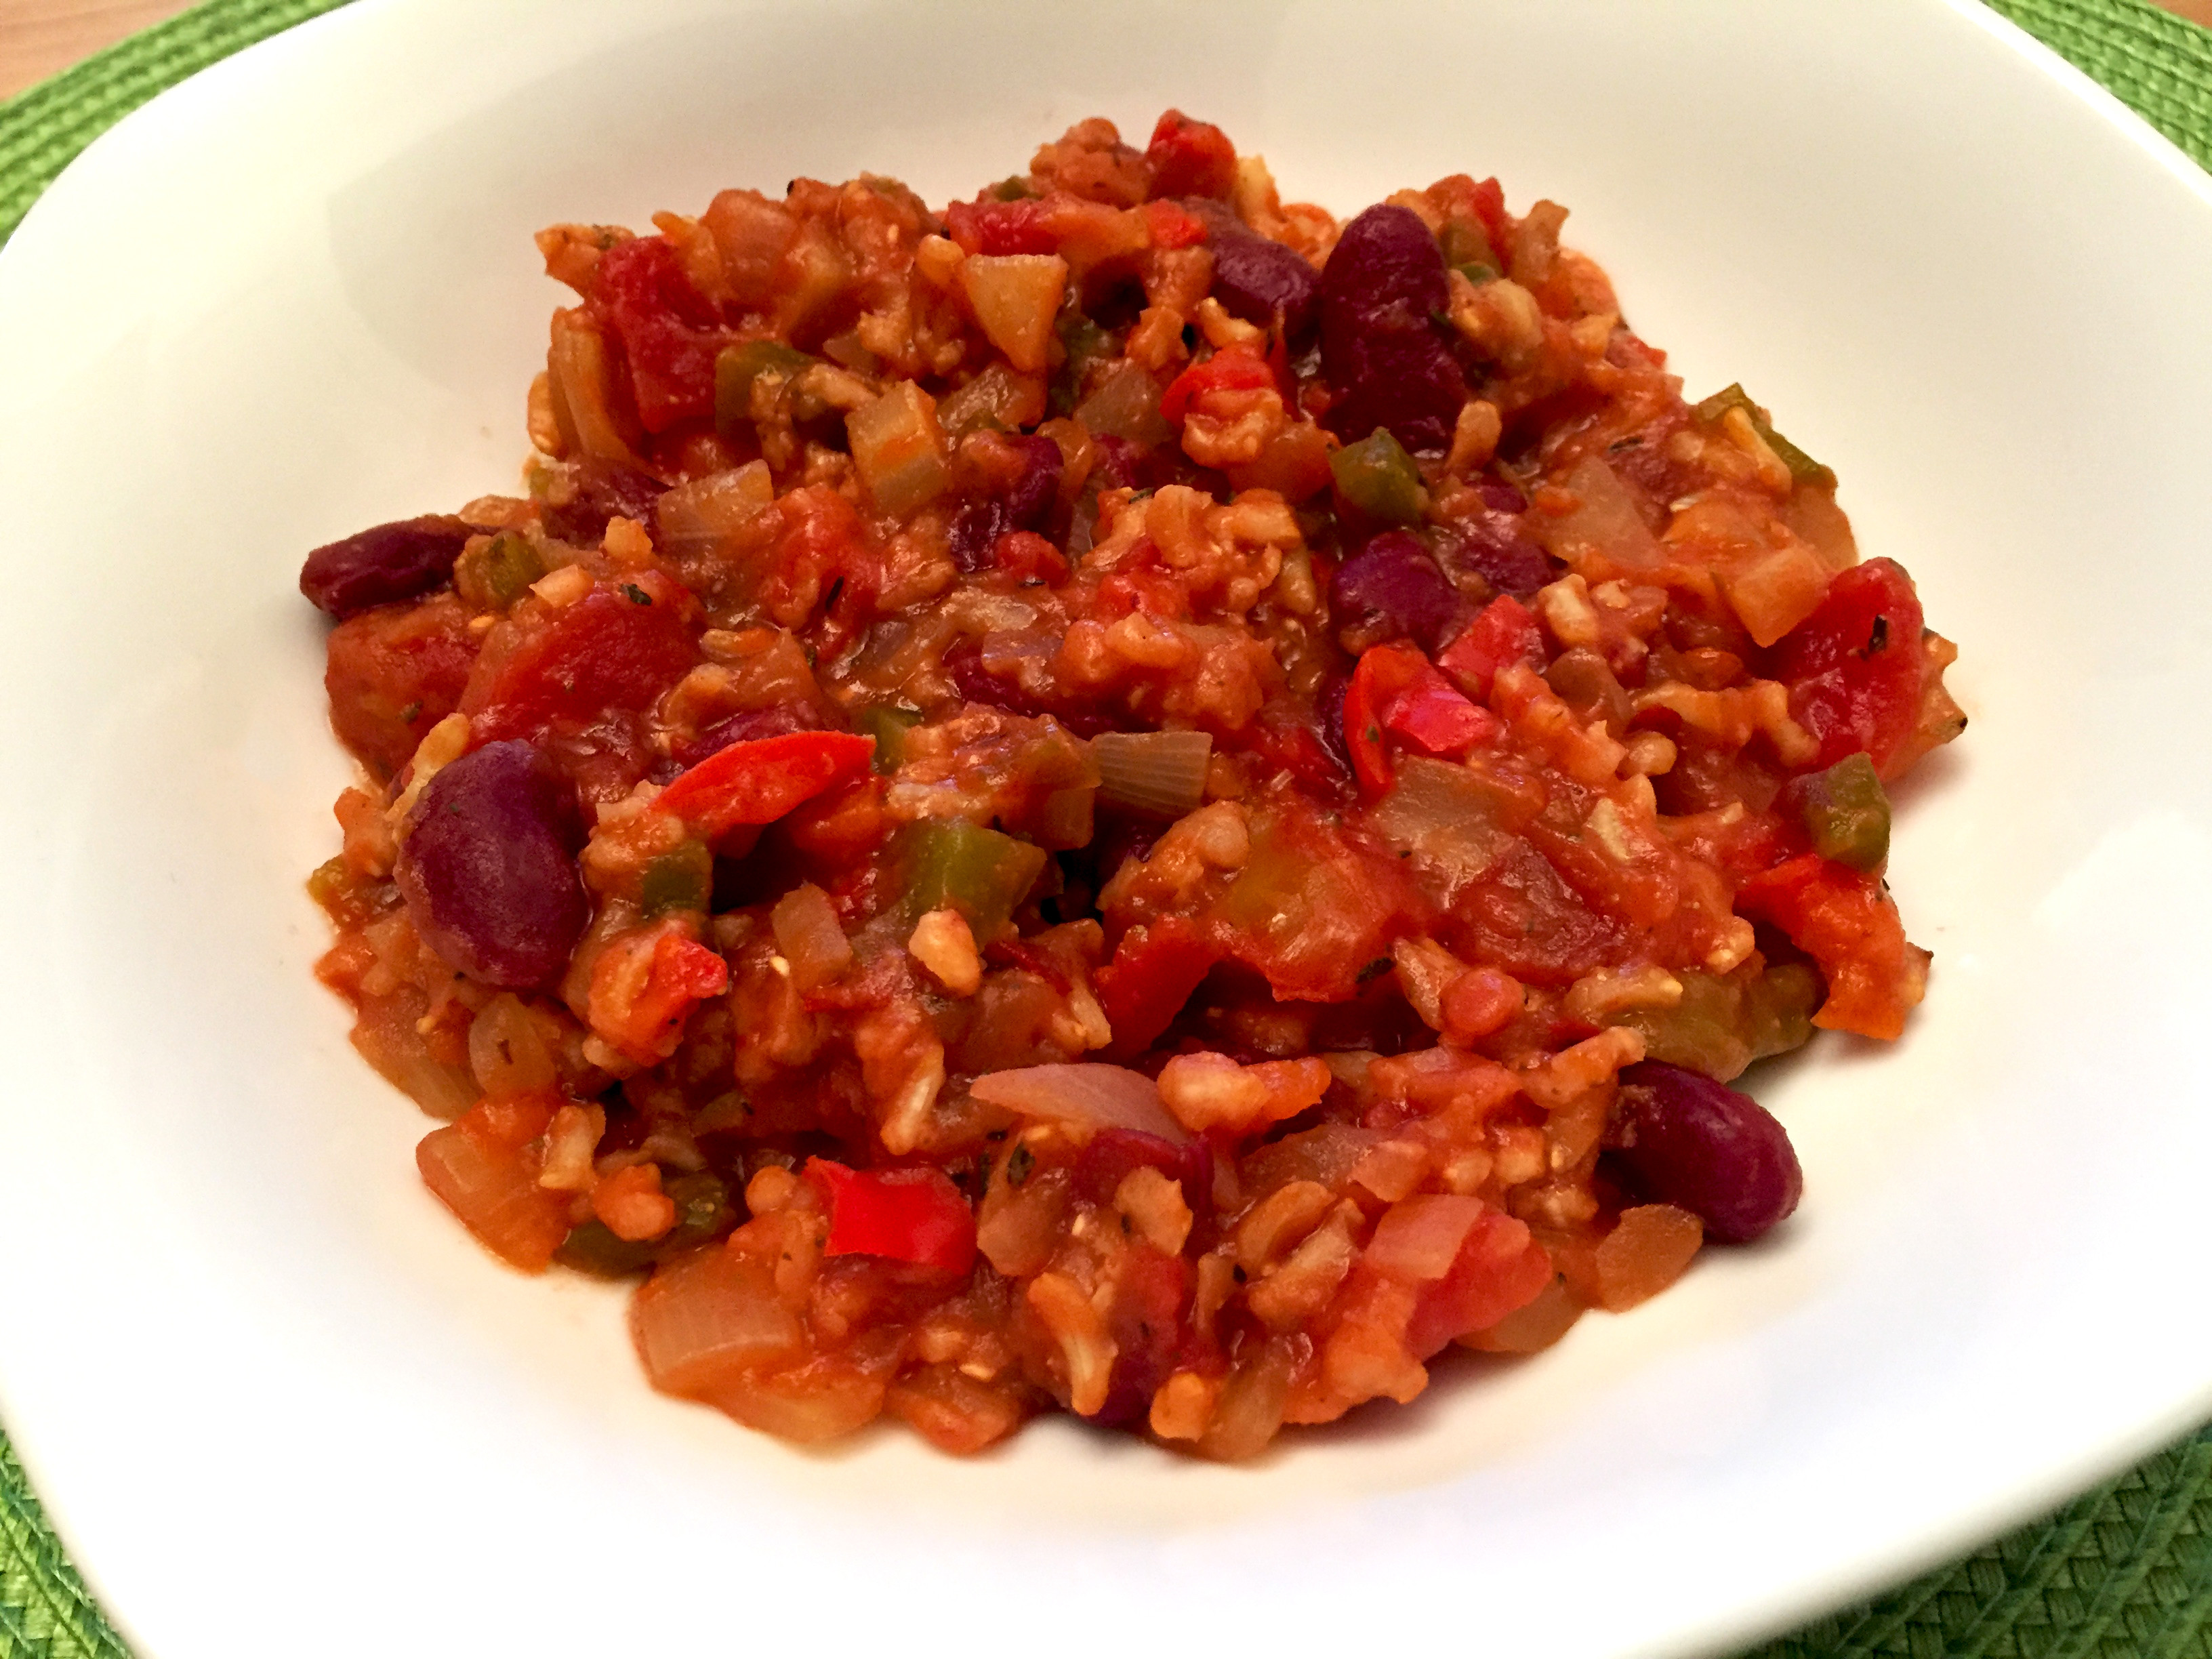 Healthy Beans And Rice Recipe  Healthy Red Beans and Rice Colorful & Delicious Creole